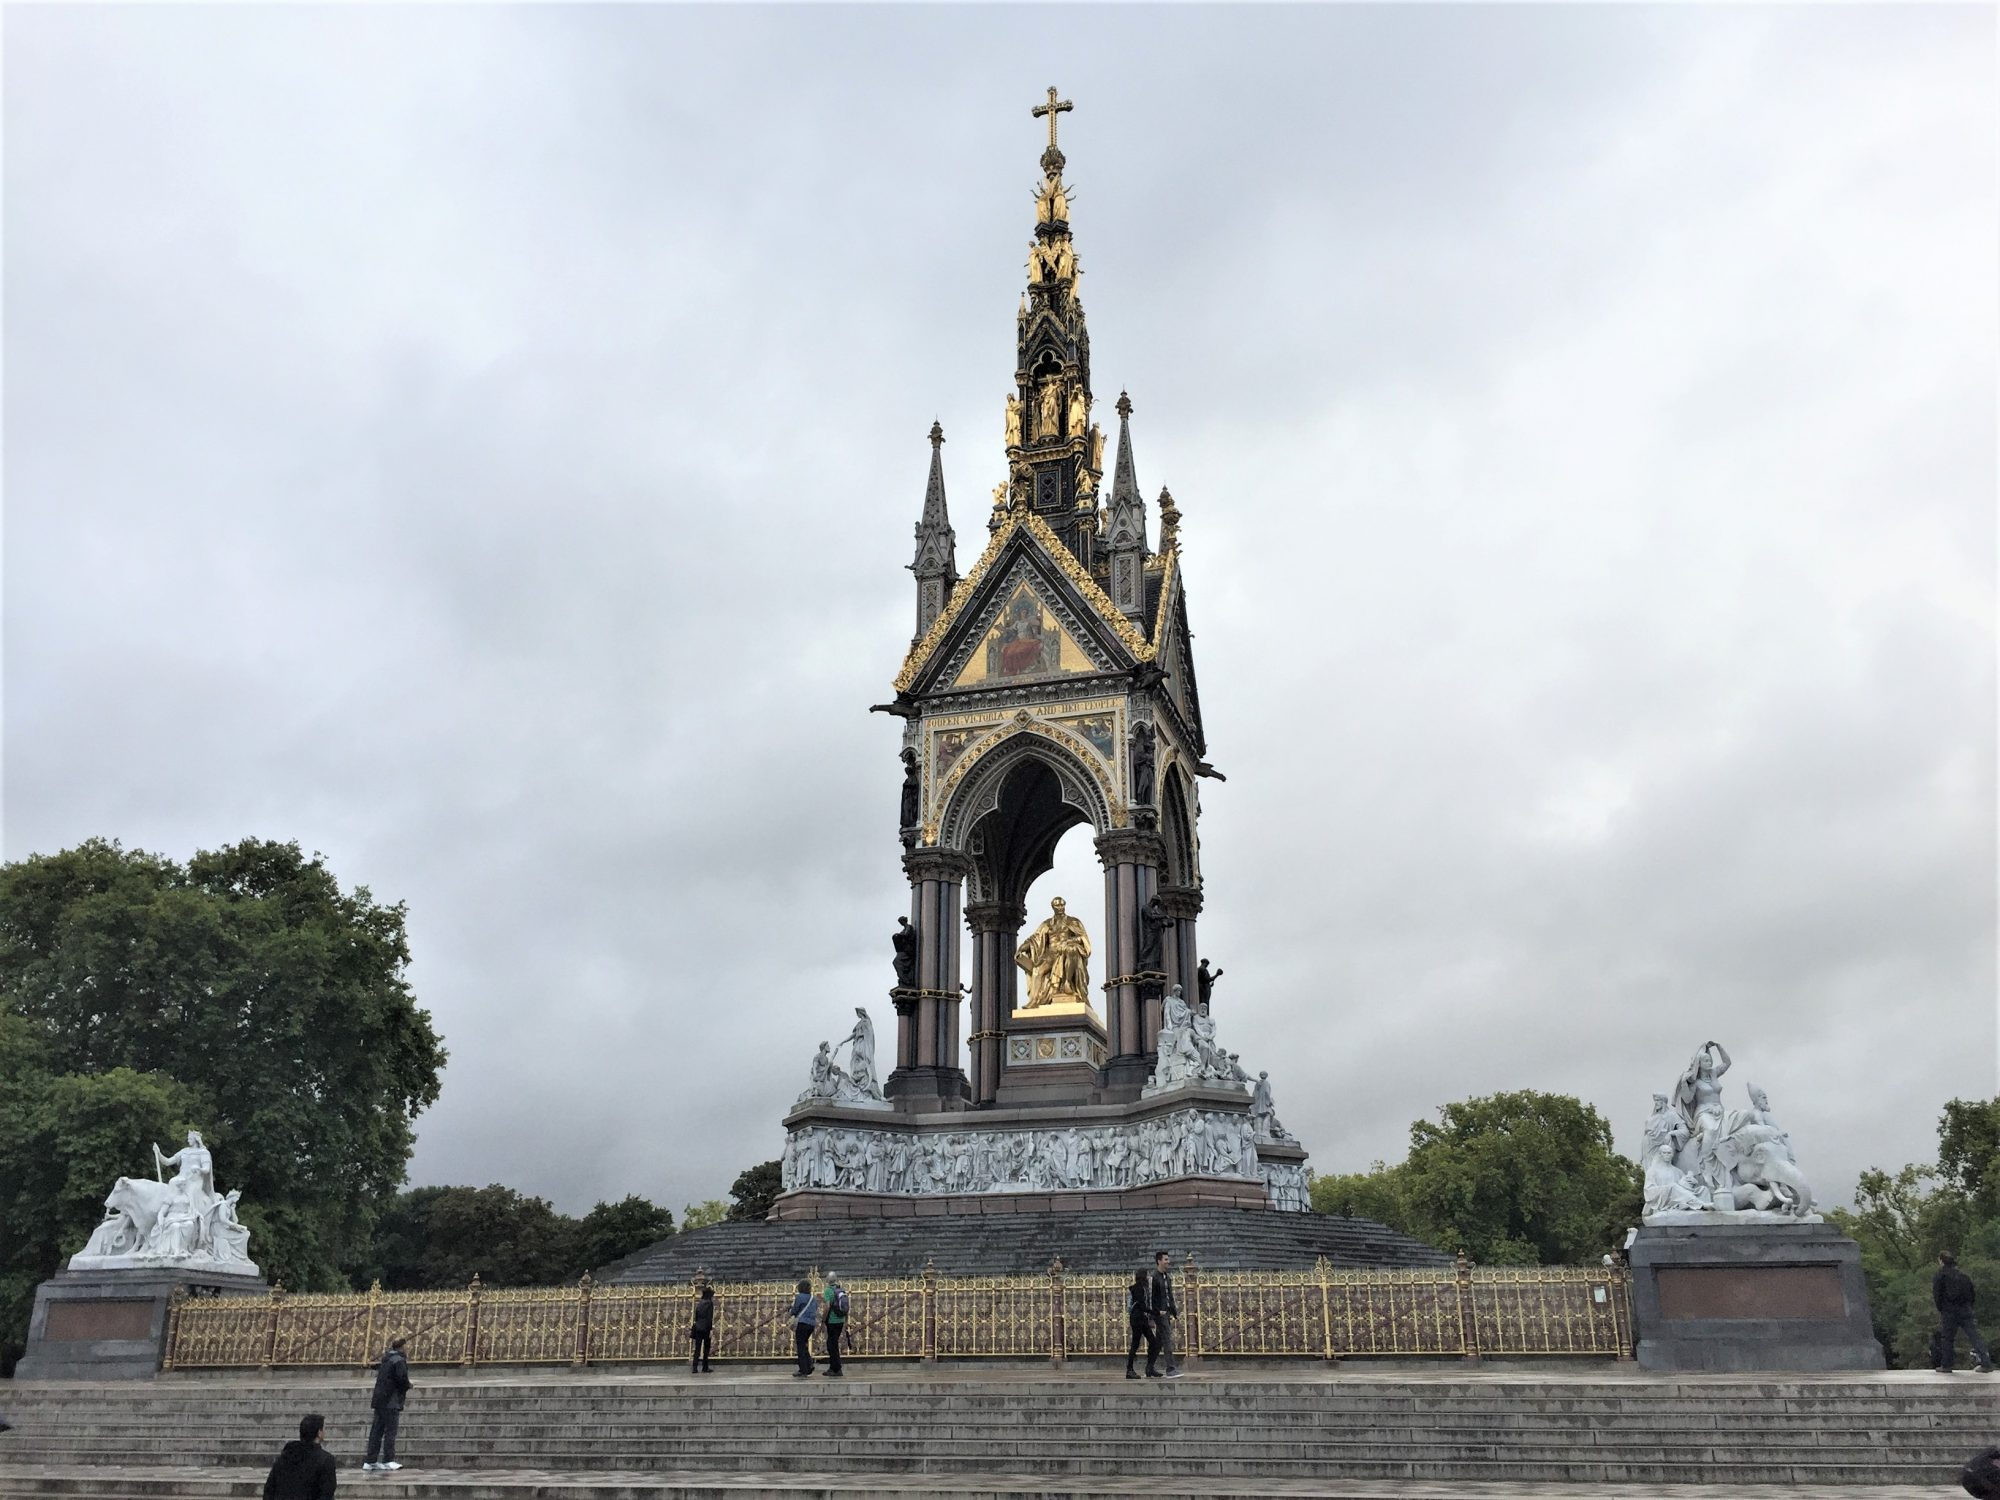 The Albert Memorial, Kensington Gardens, London, September 2017 (Photo: Sarah Sundin)